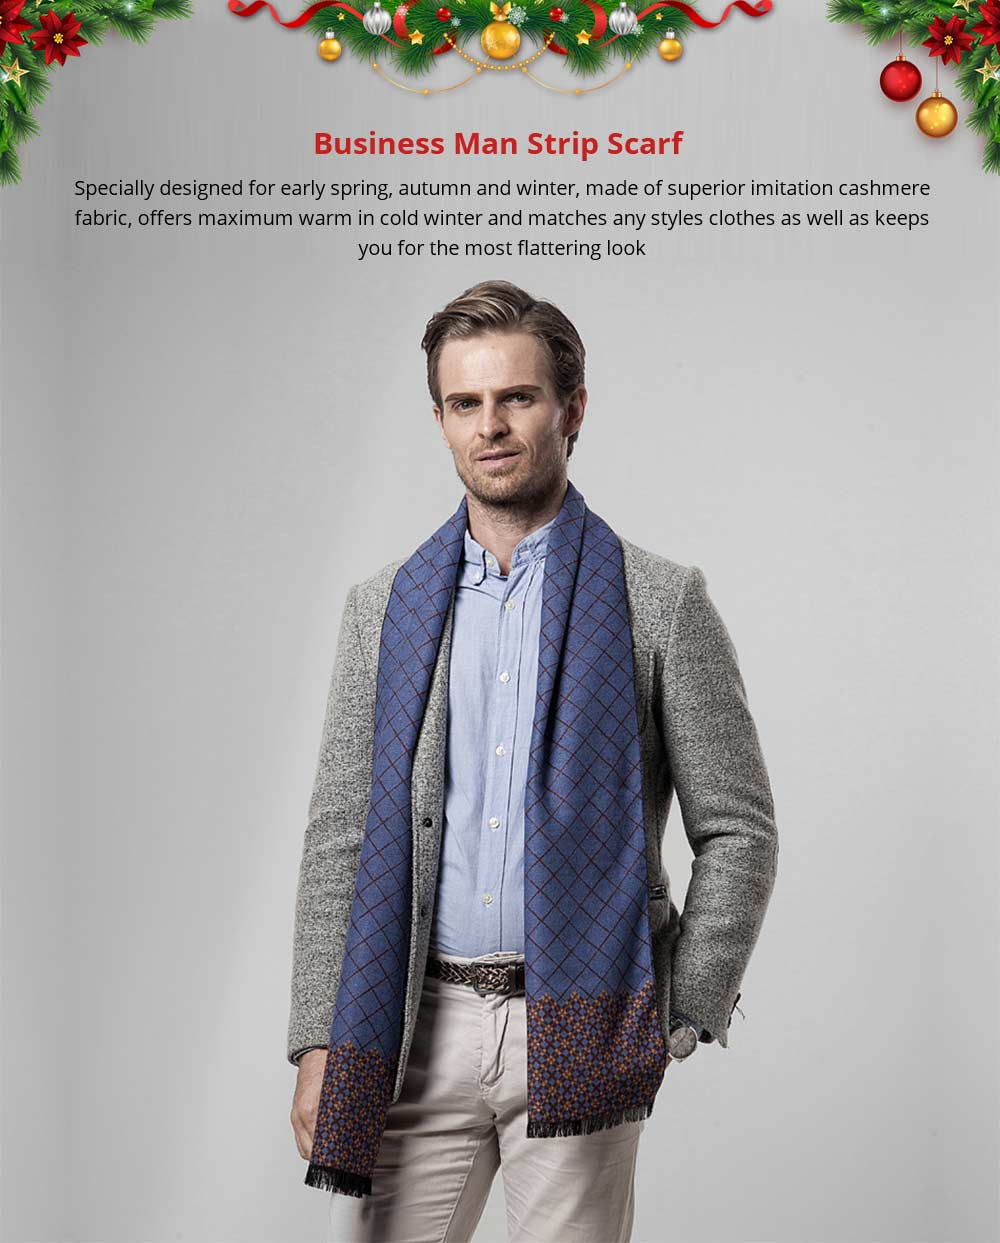 British Style Plaid Scarf for Men, Business Man, Gentleman, Unique Imitation Cashmere Plaid scarf, 2019 Brand New Men's Scarf 7